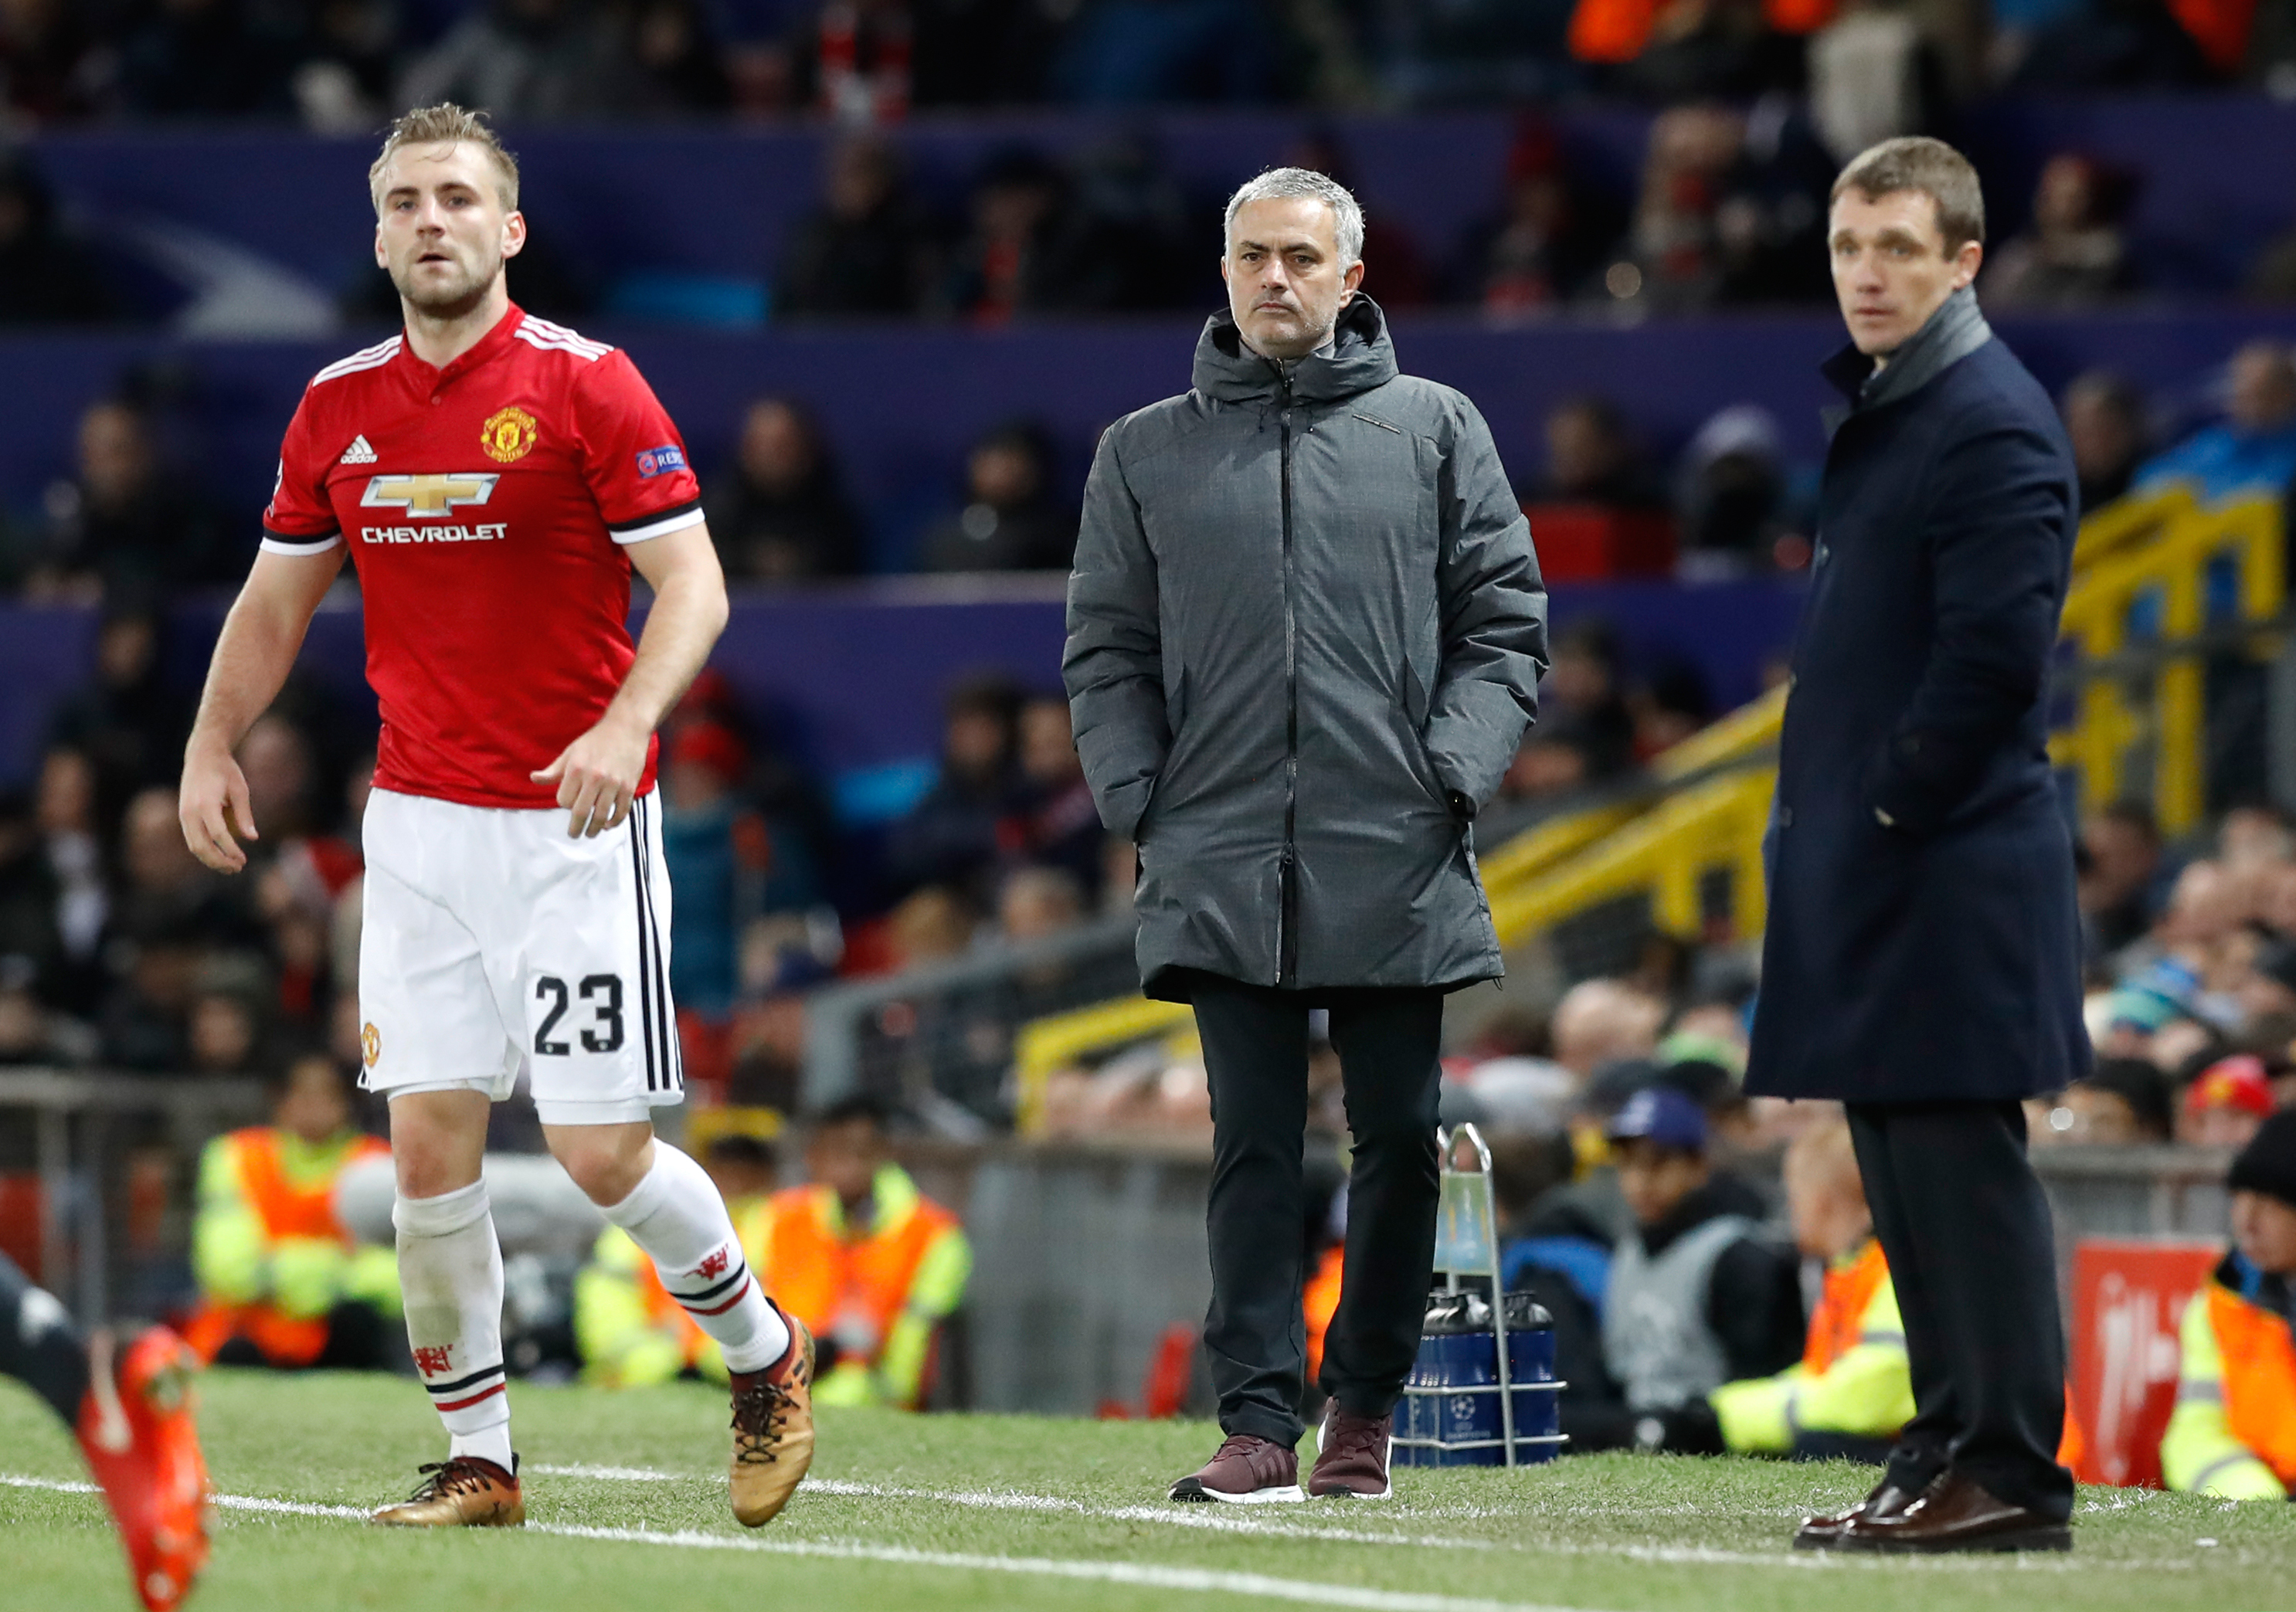 Mourinho and Shaw's relationship has been fraught. Image: PA Images